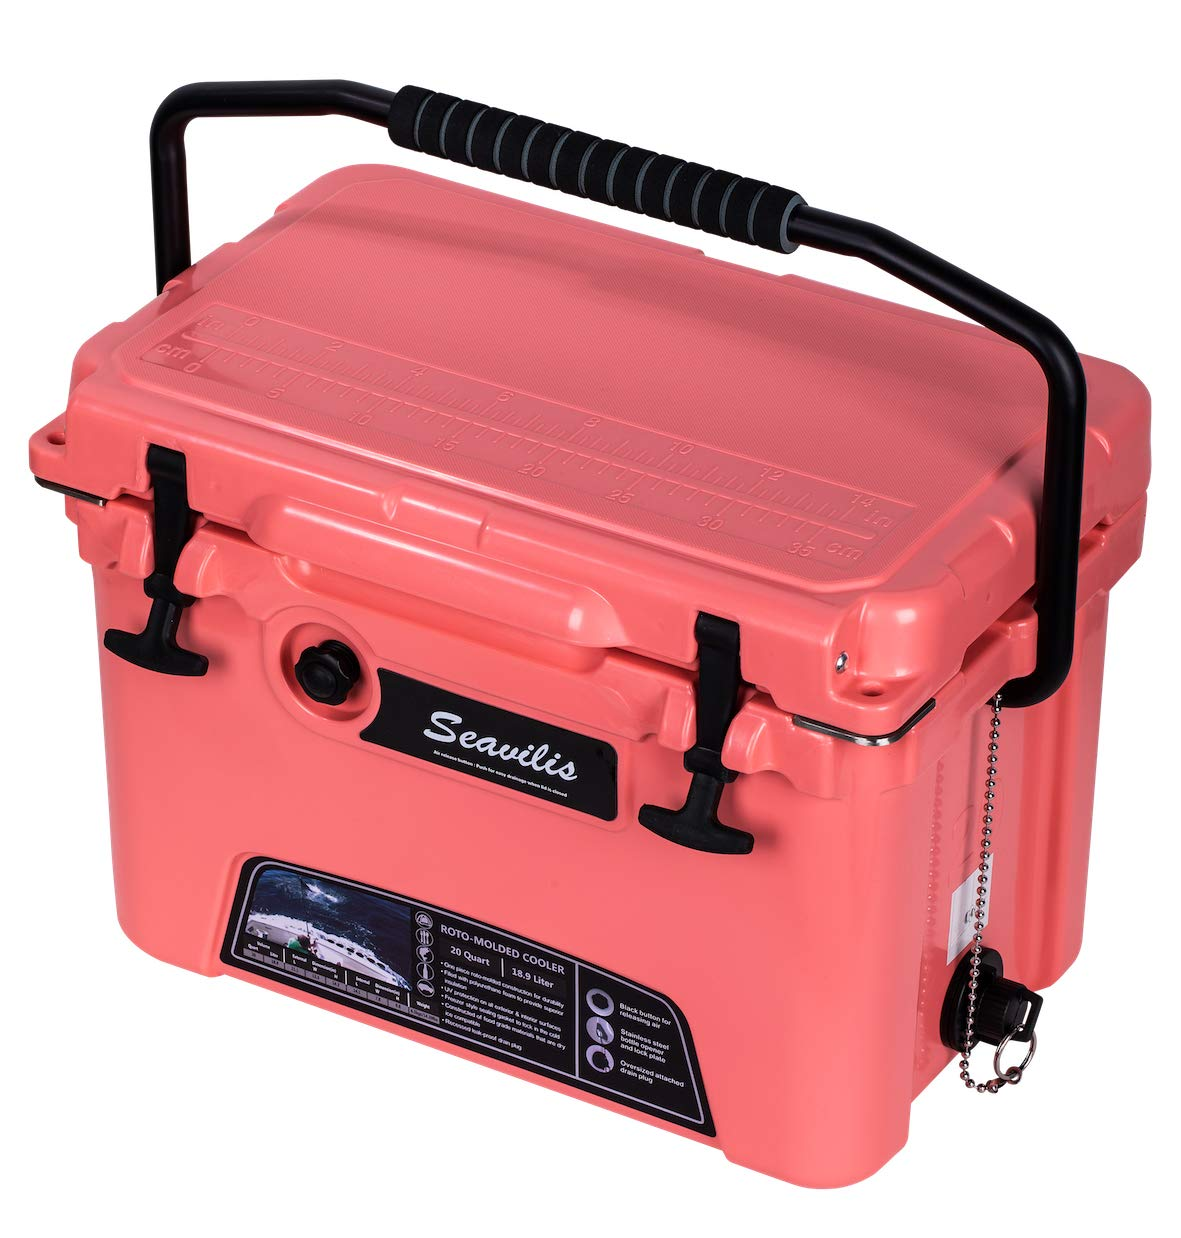 Included $28.0 Accessories MILEE-Heavy Duty Cooler 20QT RED Basket and Cup Holder are Free